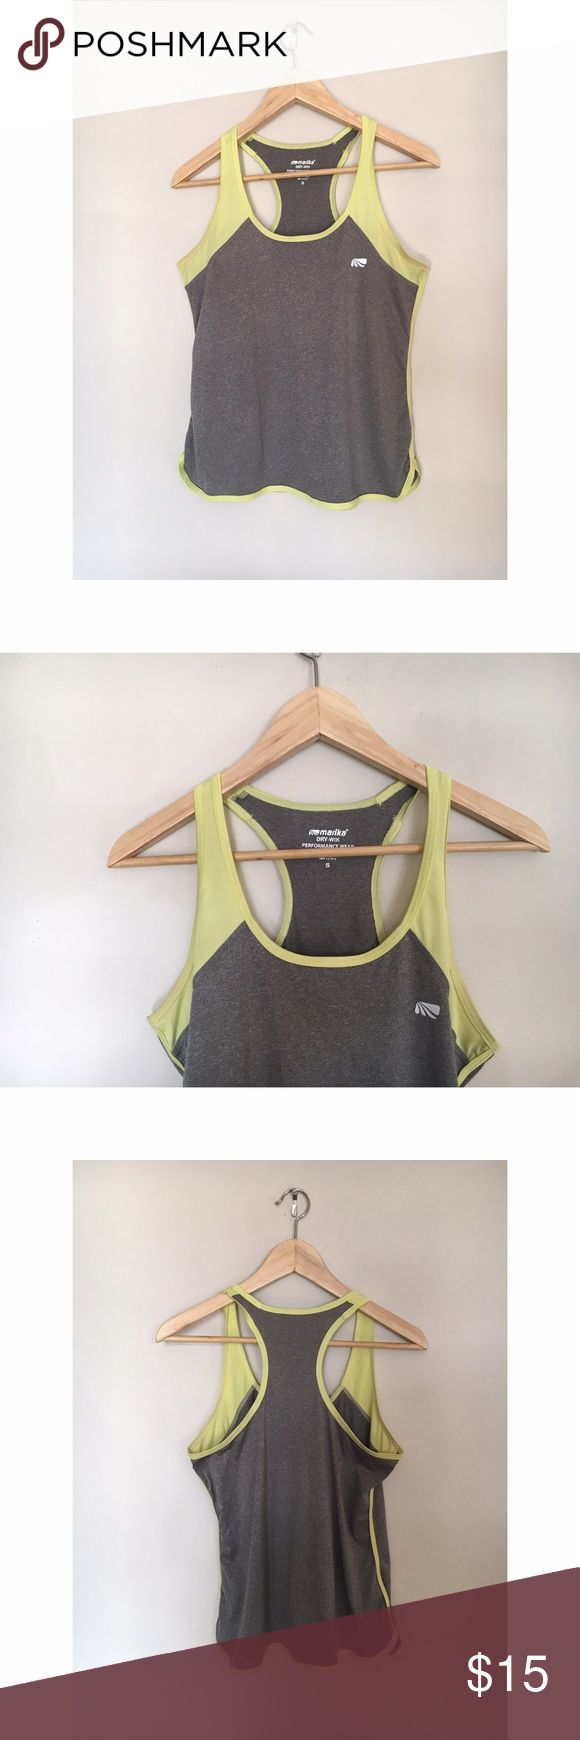 Tank top Yellow and gray athletic top Tops Tank Tops